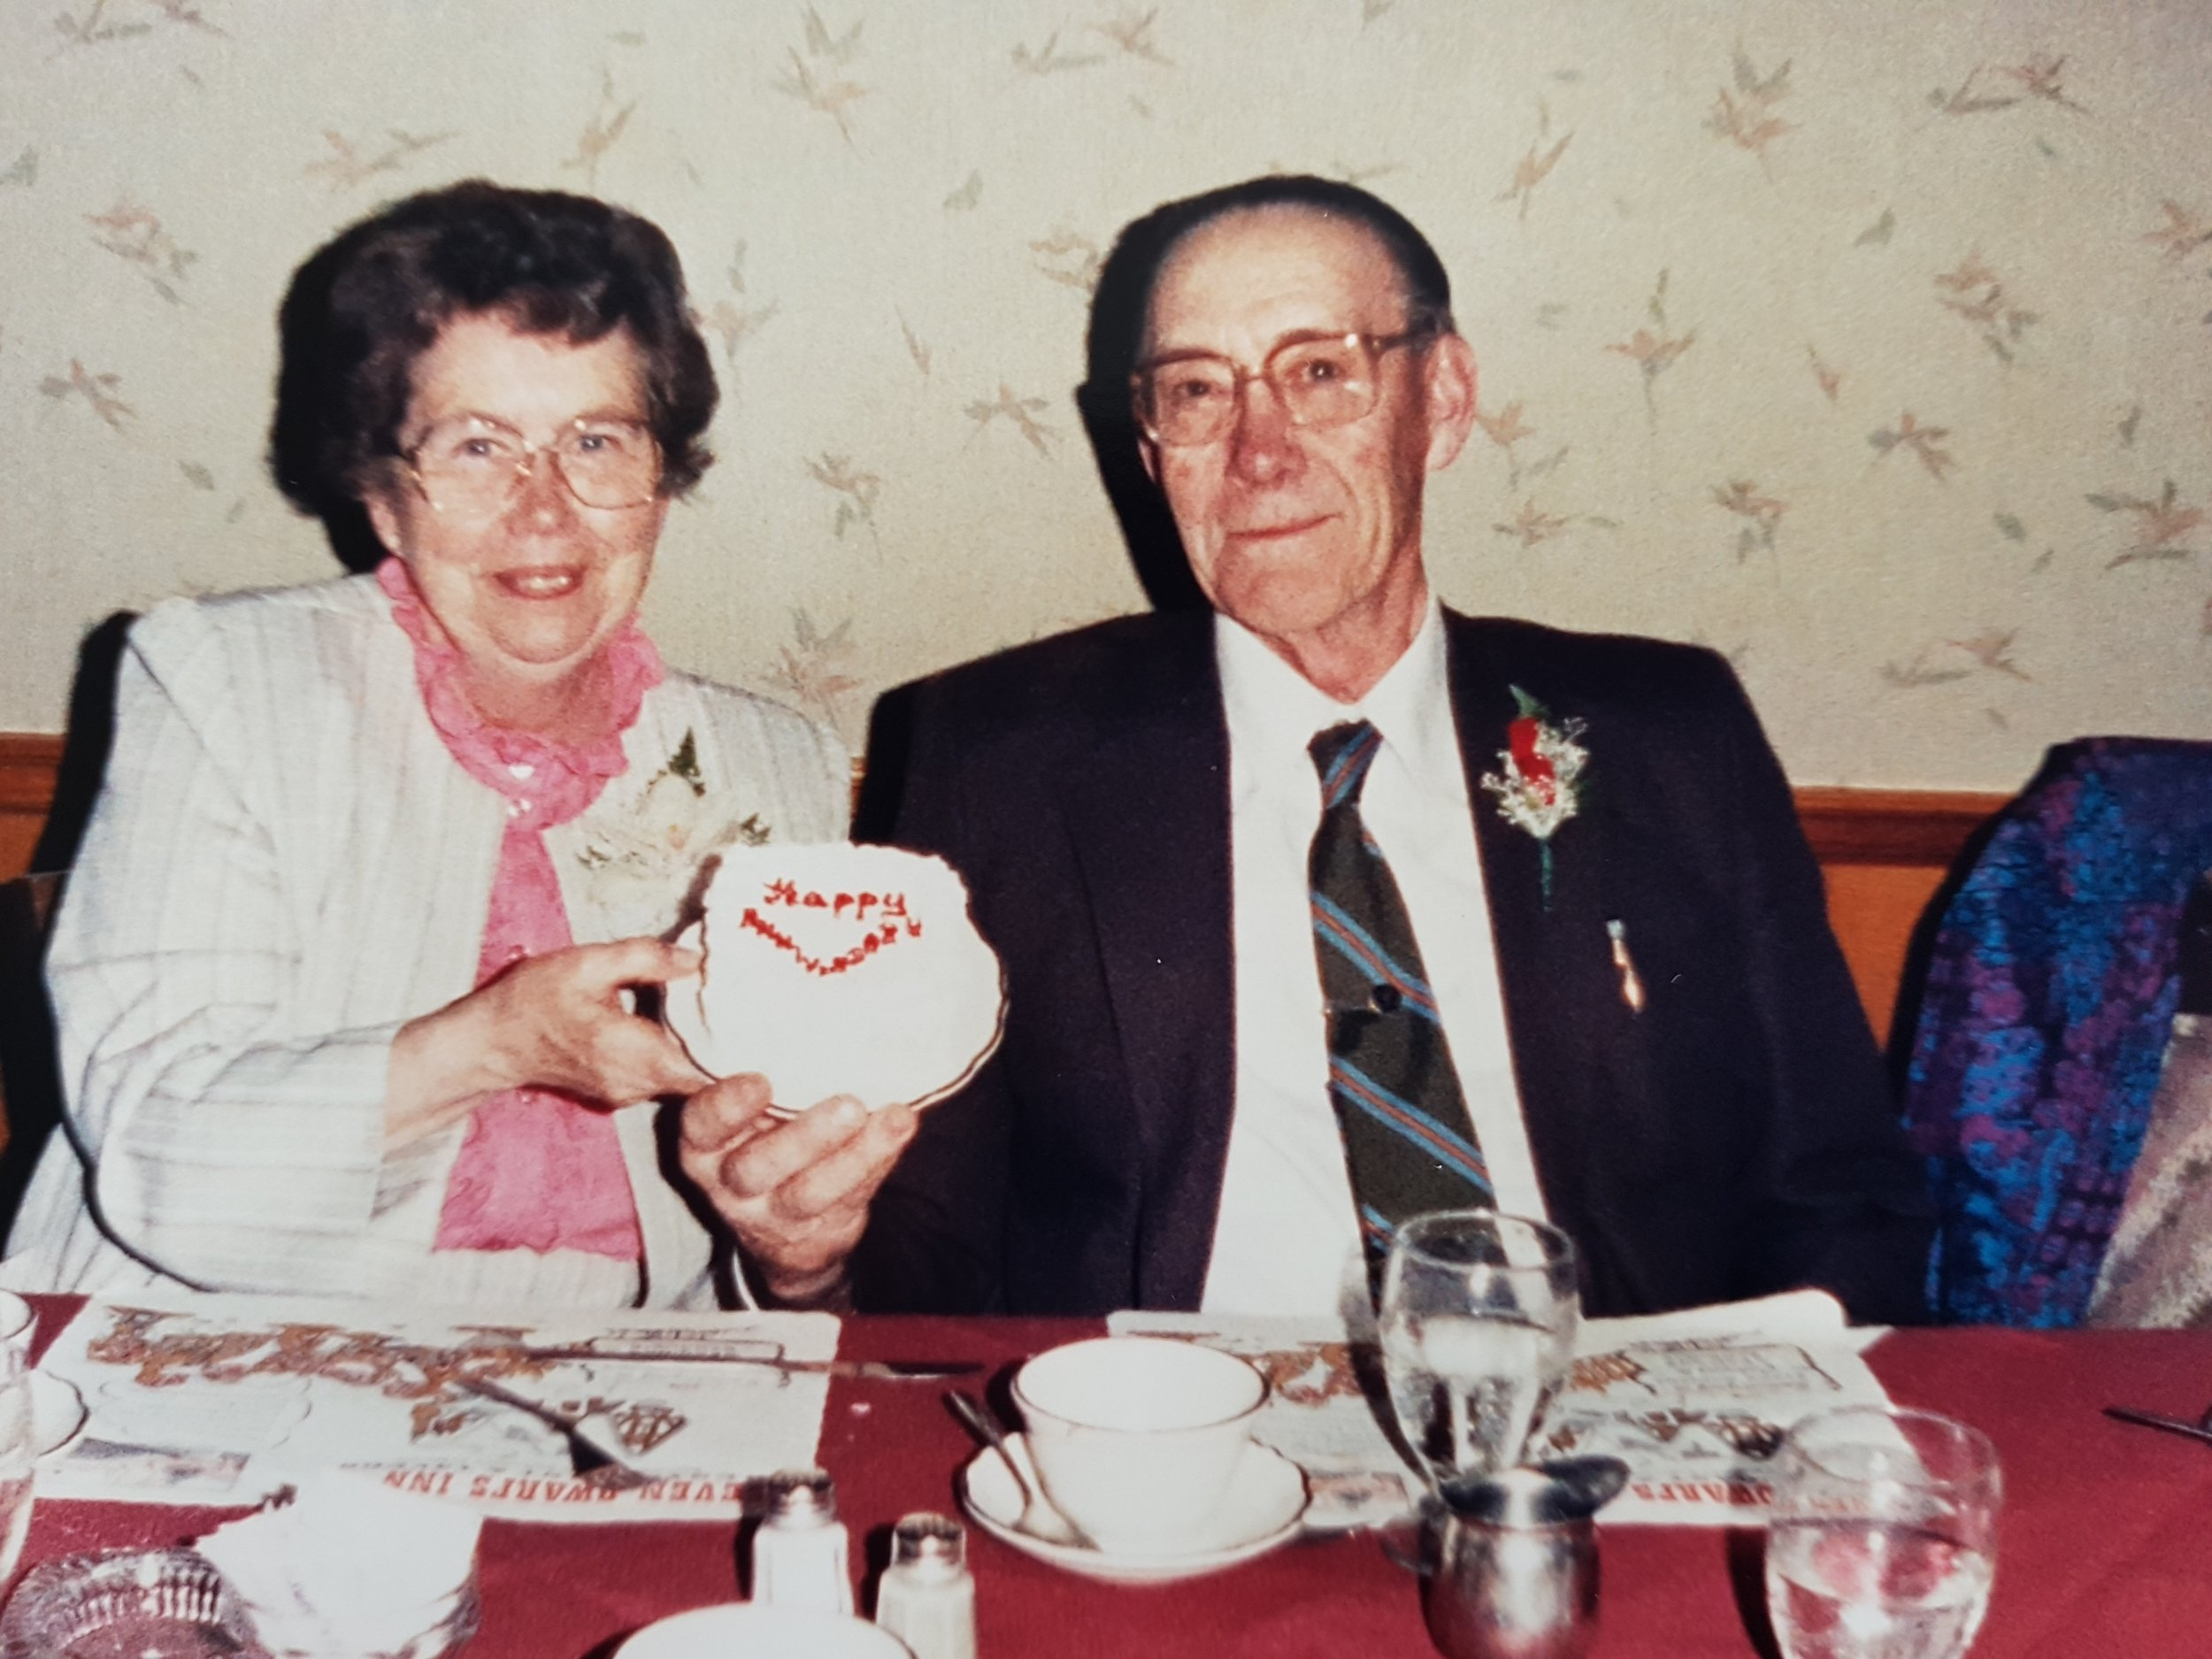 Verna & Bill Celebration 2.jpg